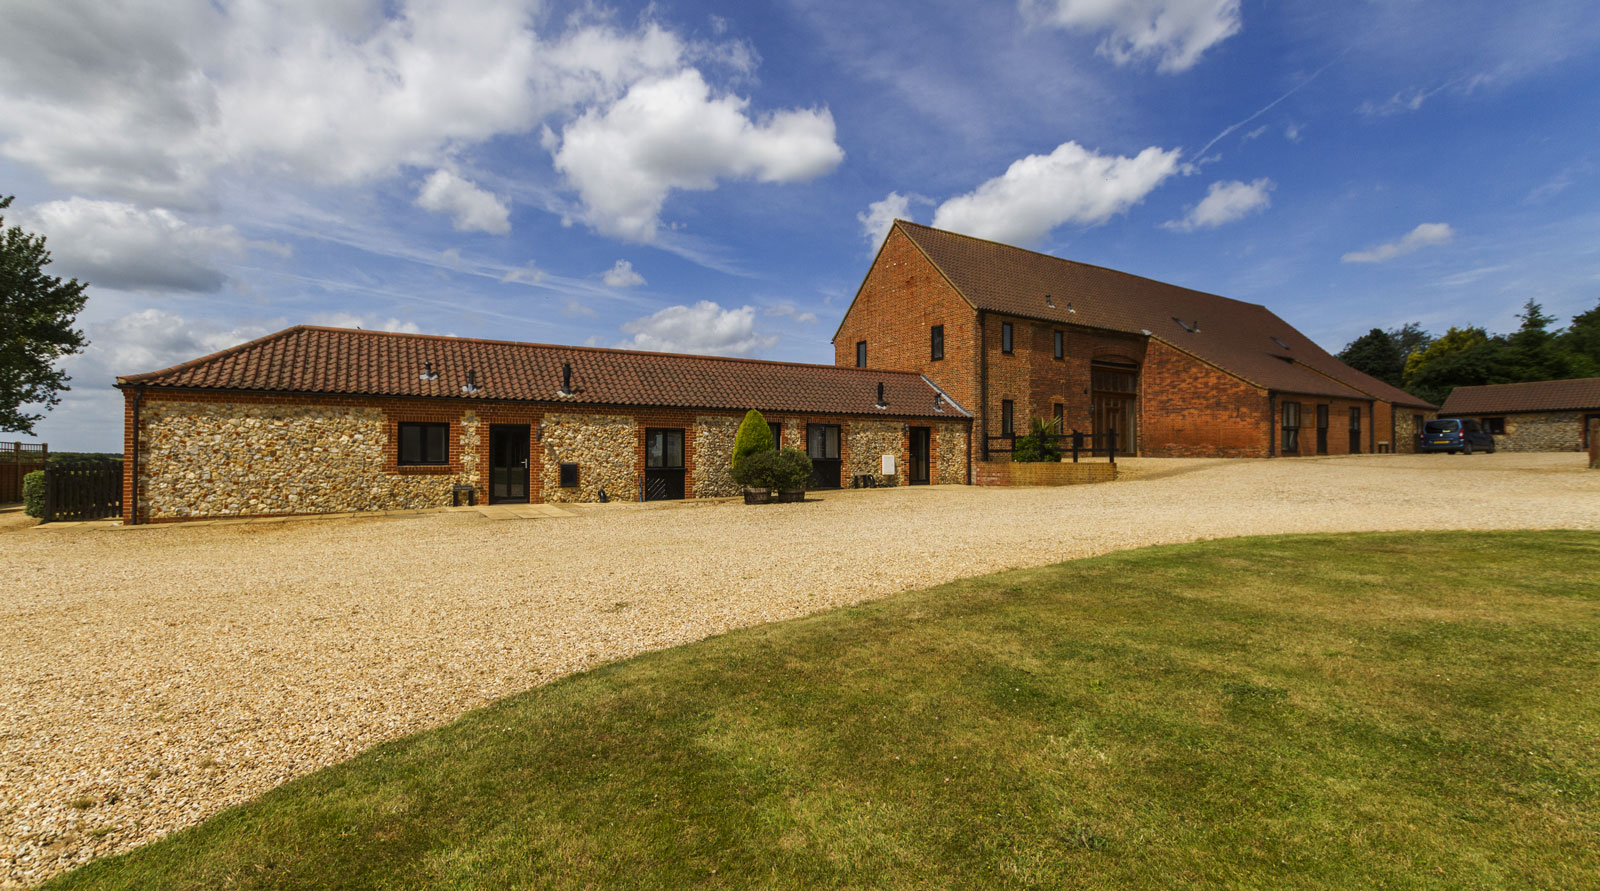 Church farm Barns - Norfolk Disabled Friendly Cottages